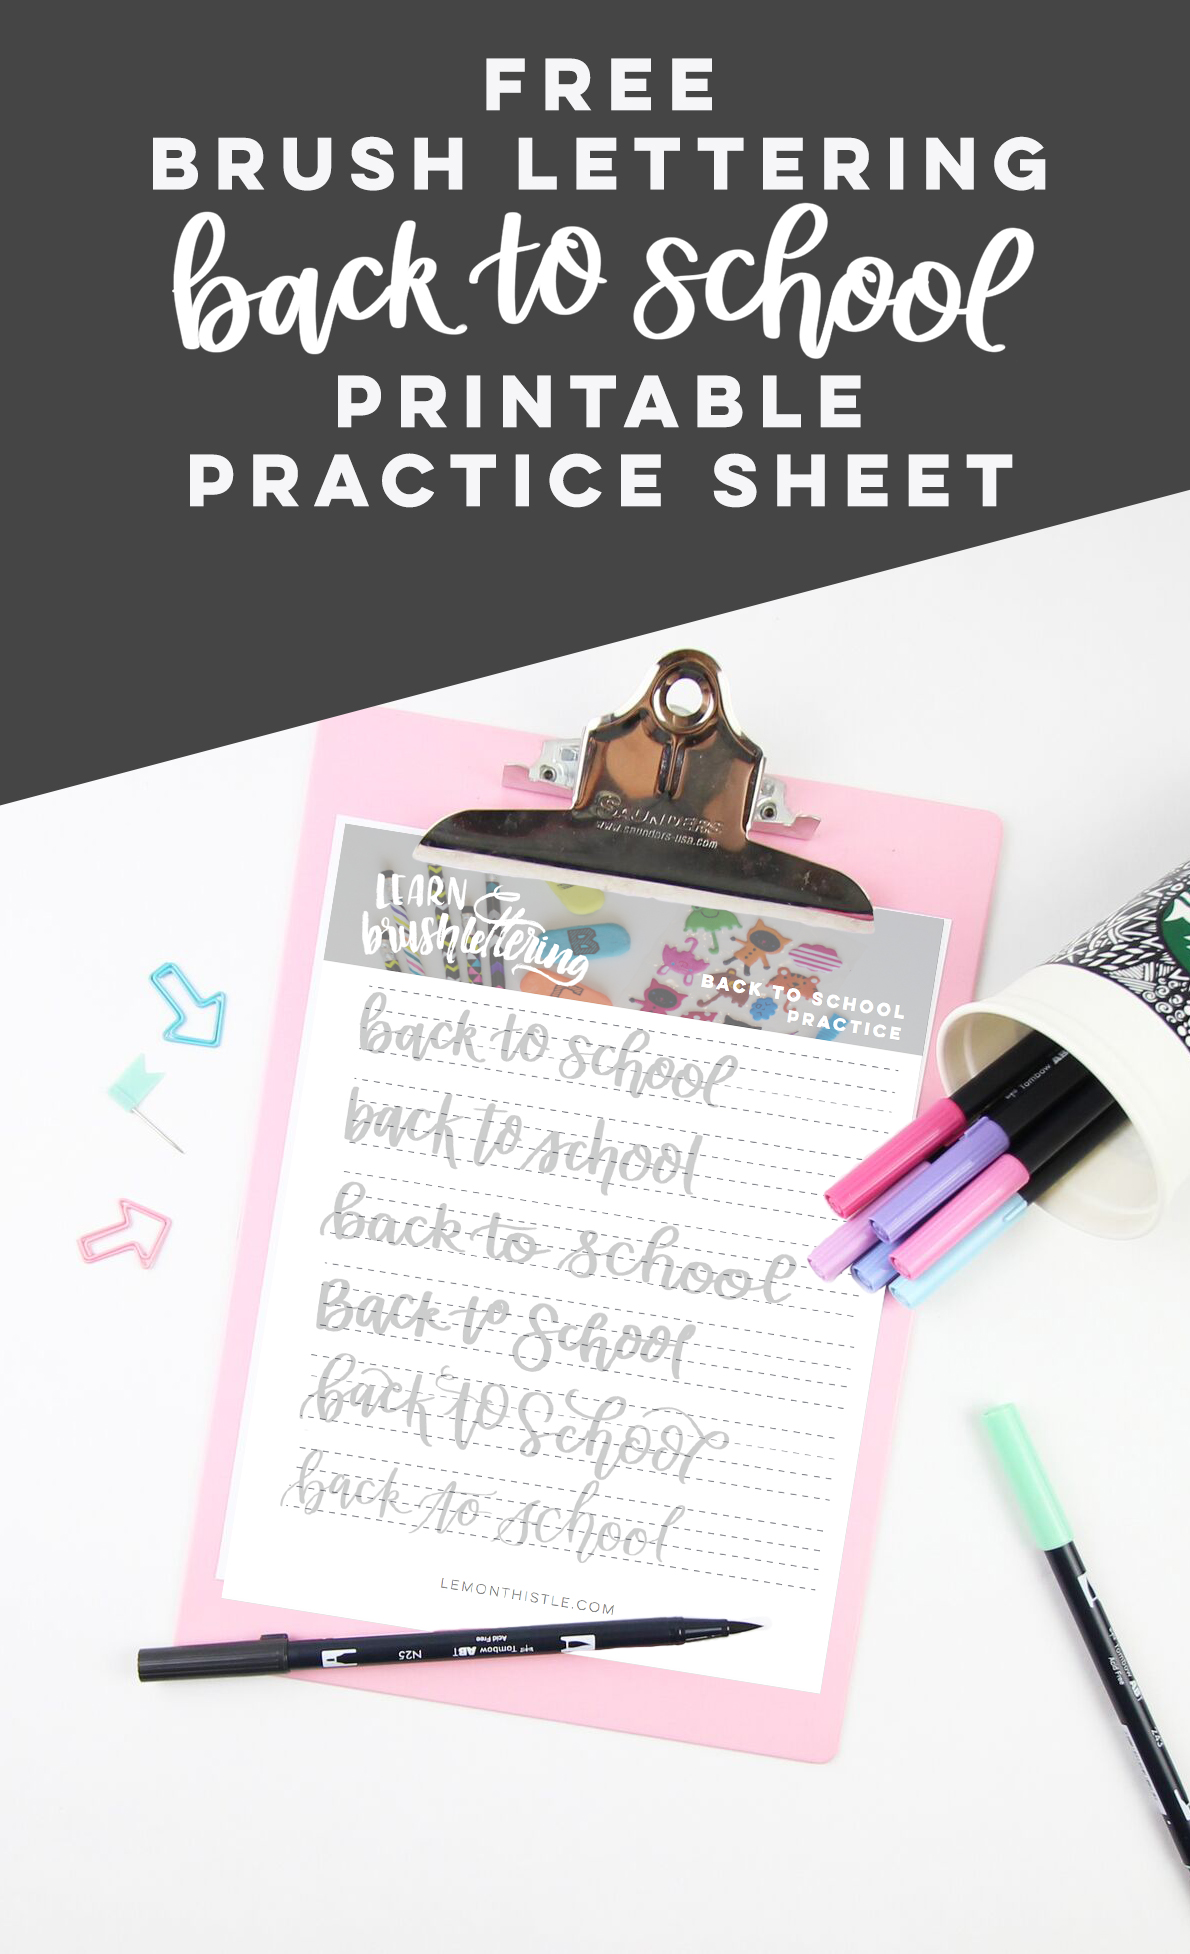 Printable Brush Lettering Practice Sheet Back To School